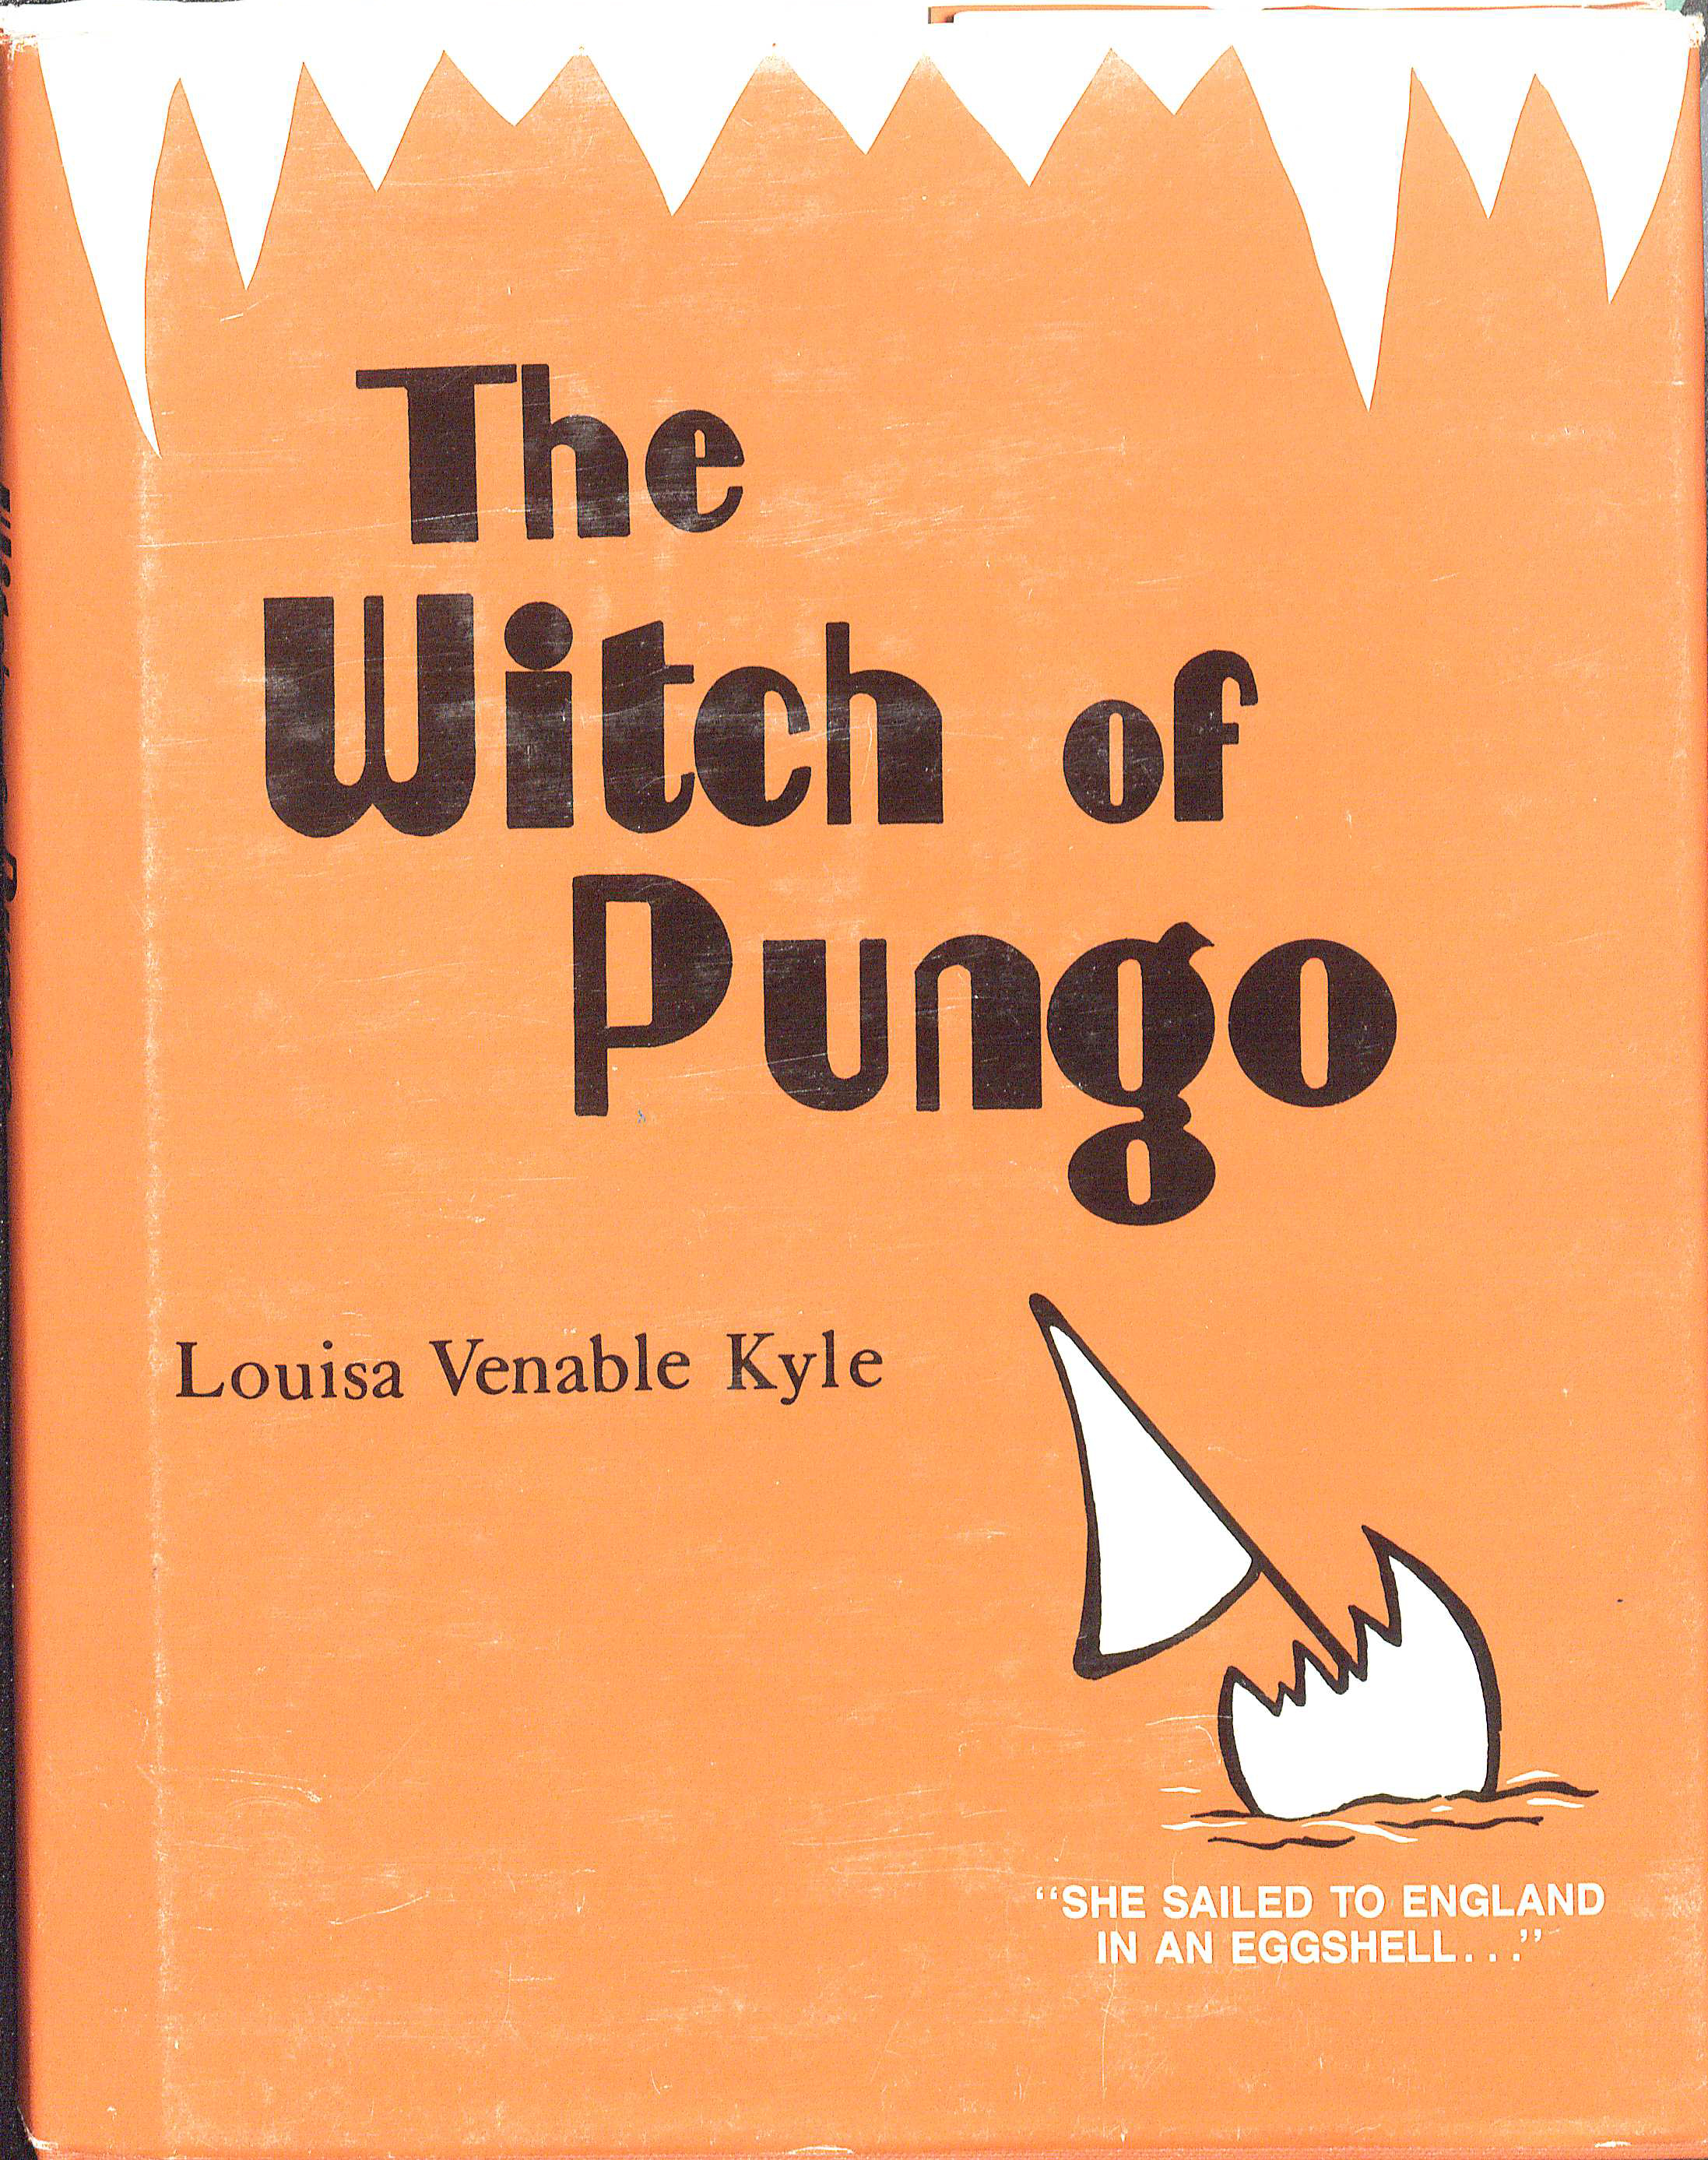 One story of Grace Sherwood, a highly embellished children's story, is found in Louisa Venable Kyle's The Witch of Pungo, (Virginia Beach, Va: Four O'Clock Farms Publishing Co.), 1988.  (PZ7 .K983 Wi 1988. Image by Anne Causey)